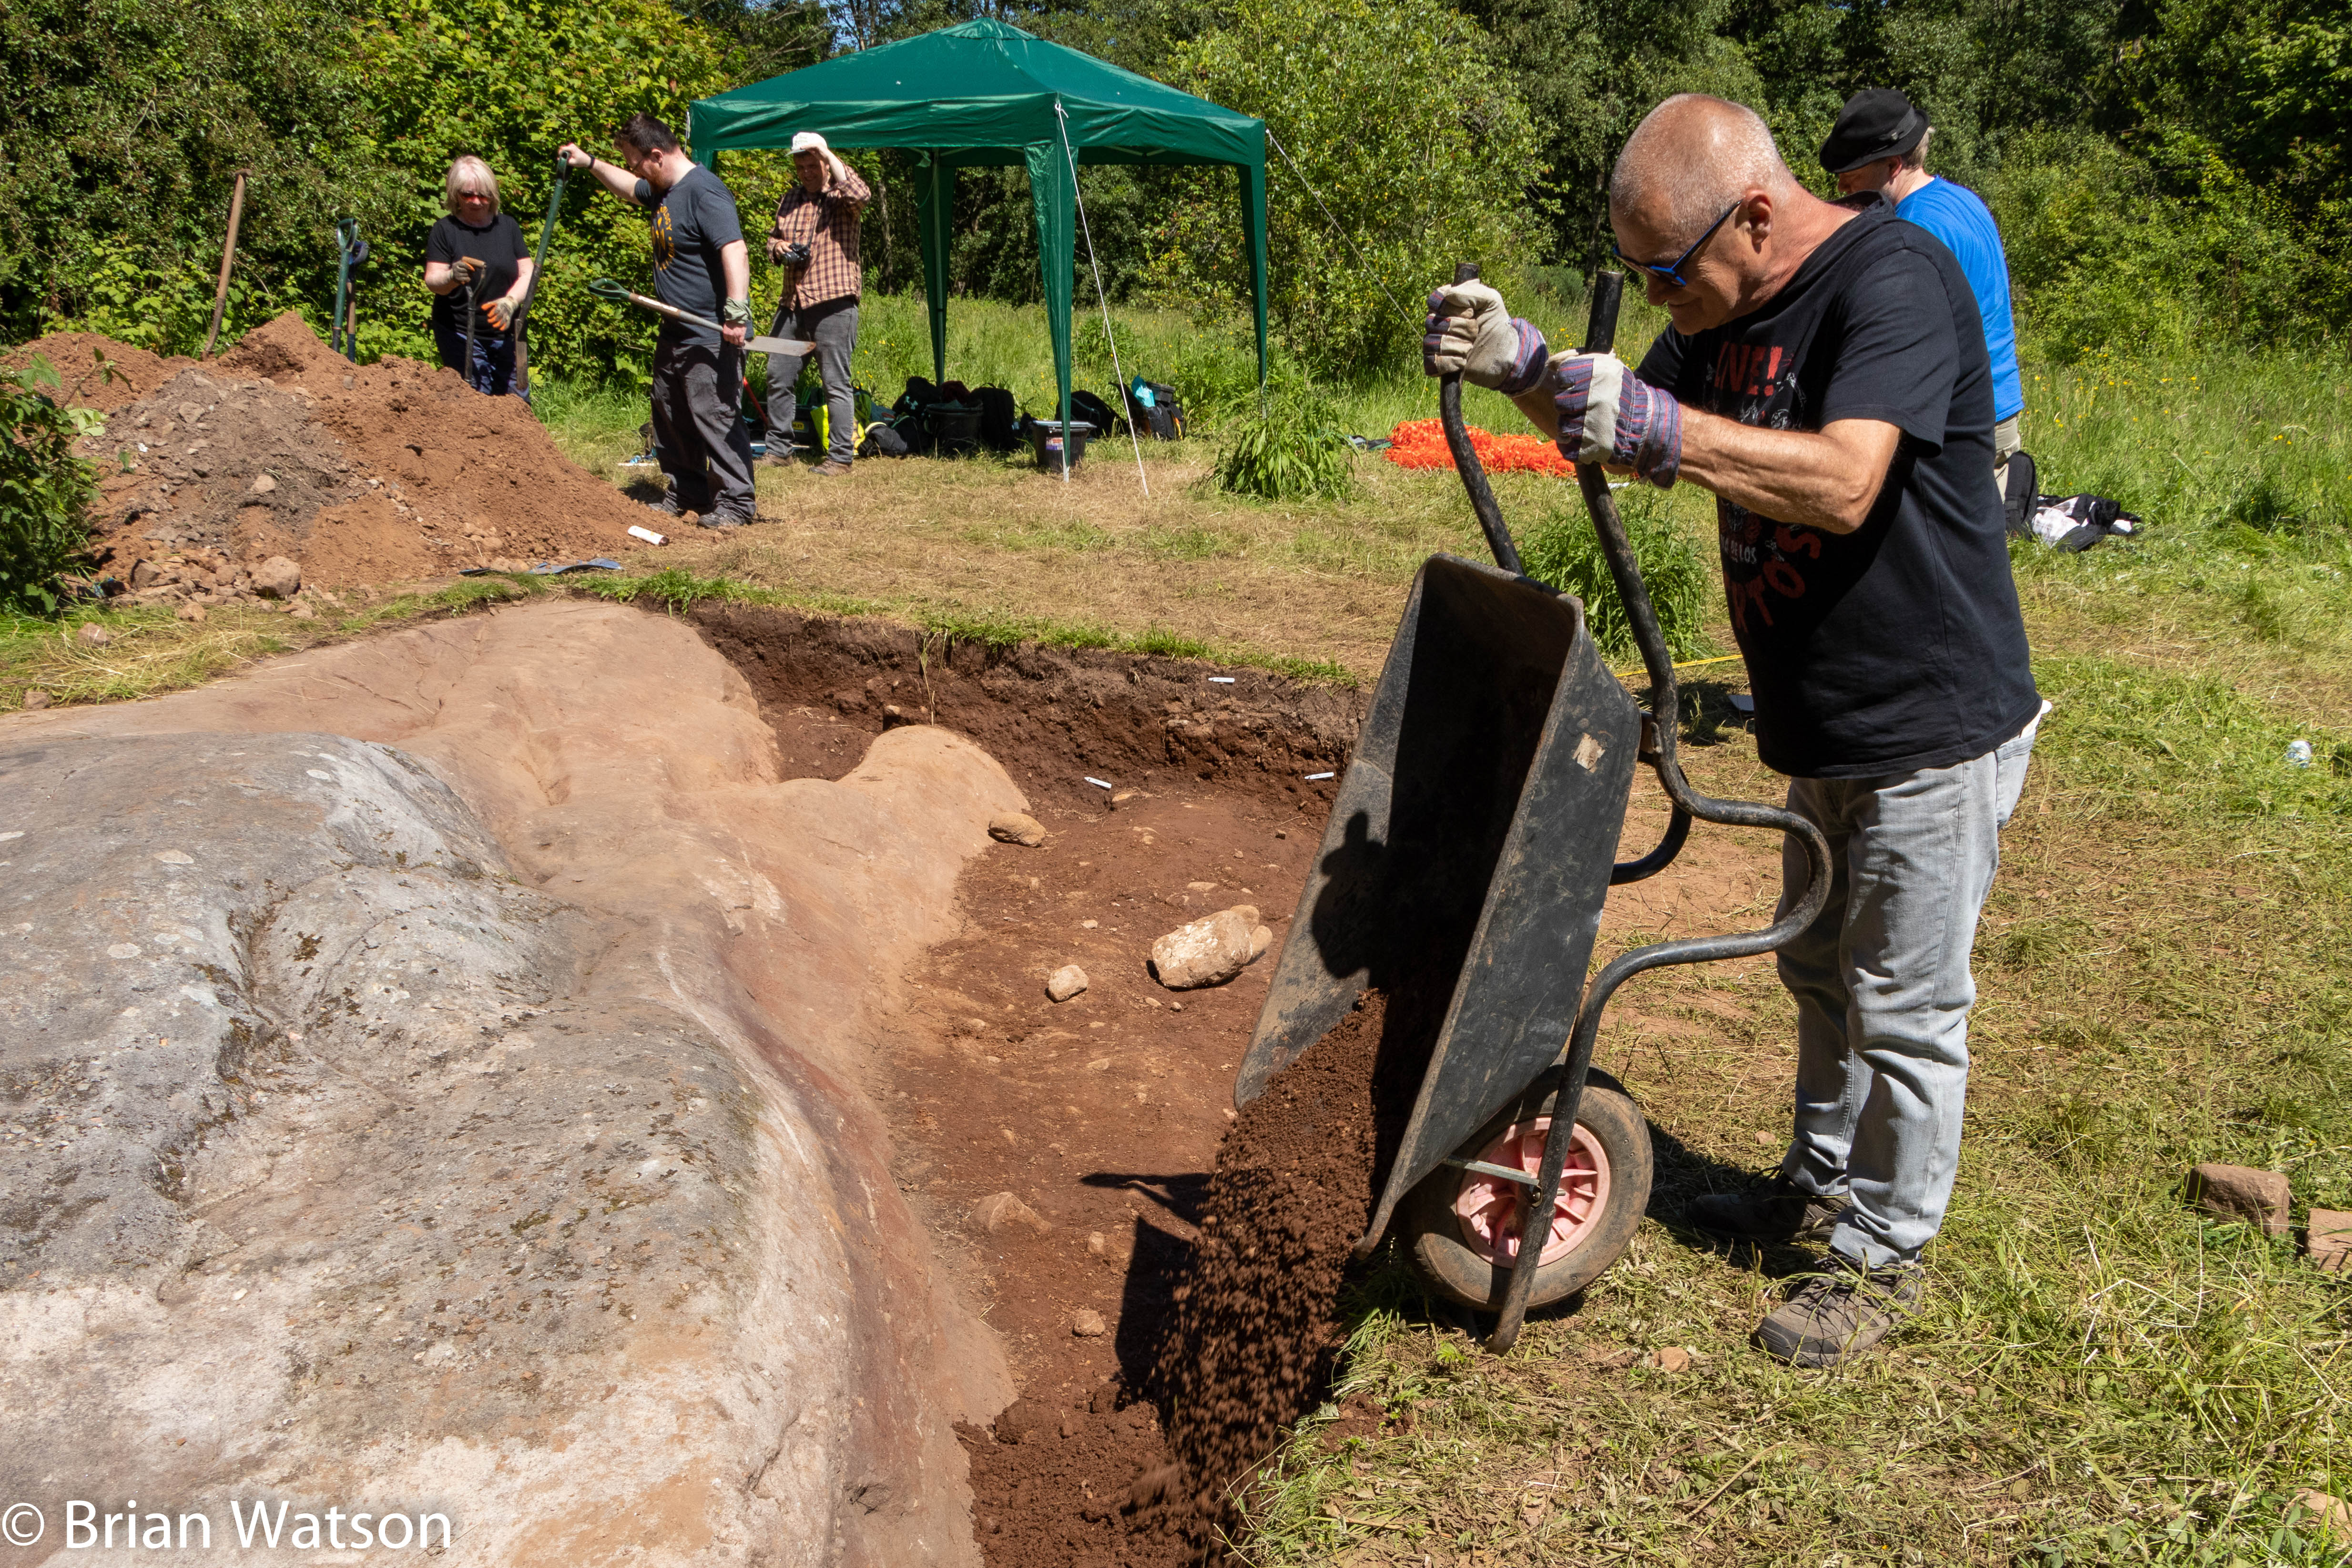 Tipping soil from a wheelbarrow into the trench at the Faifley Rocks excavation.